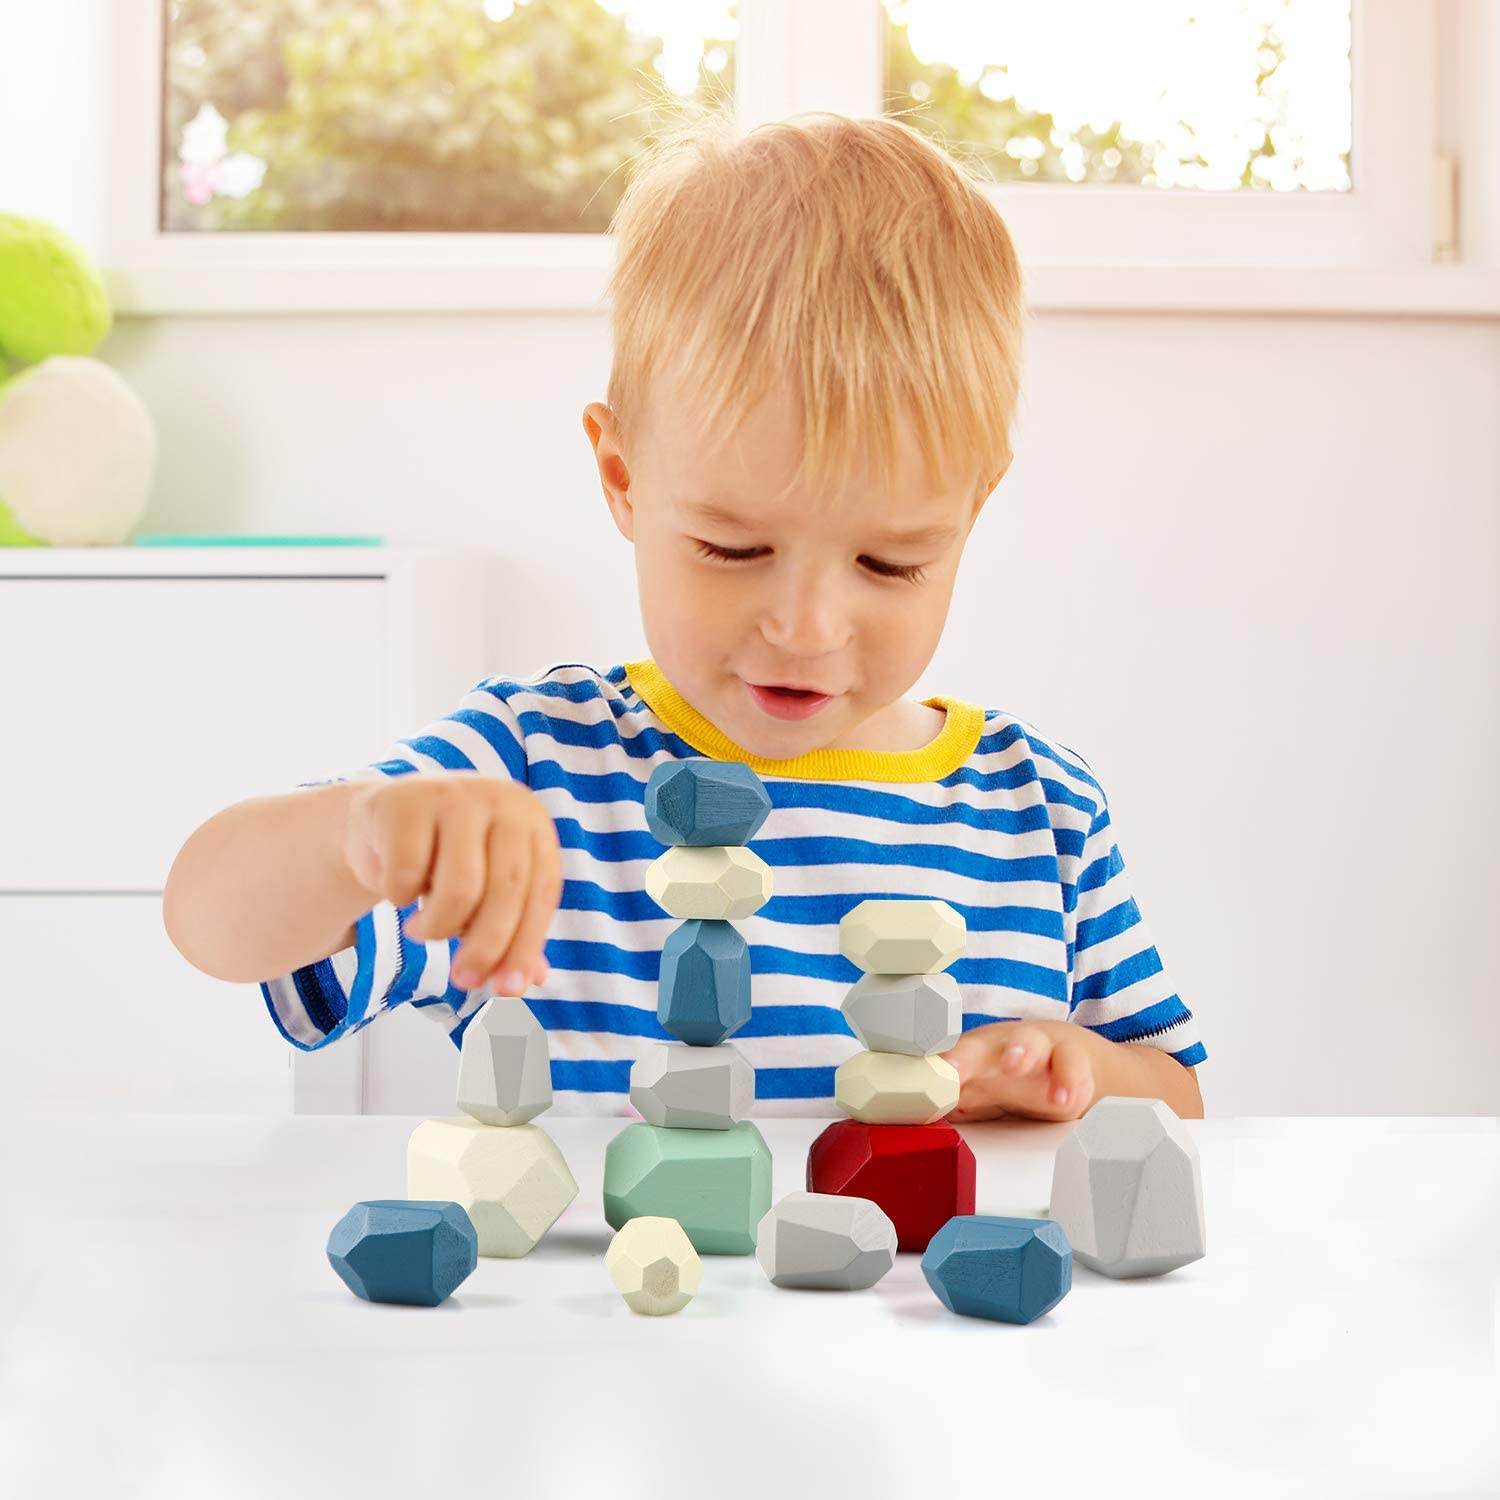 Gemileo 16PCS Colorful Stone Stacking Blocks for Kids Wooden Building Blocks Set for Toddlers 1-3 Baby Rock Stone Sorting Blocks Game Lightweight Preschool Learning Toys for Girls Boys